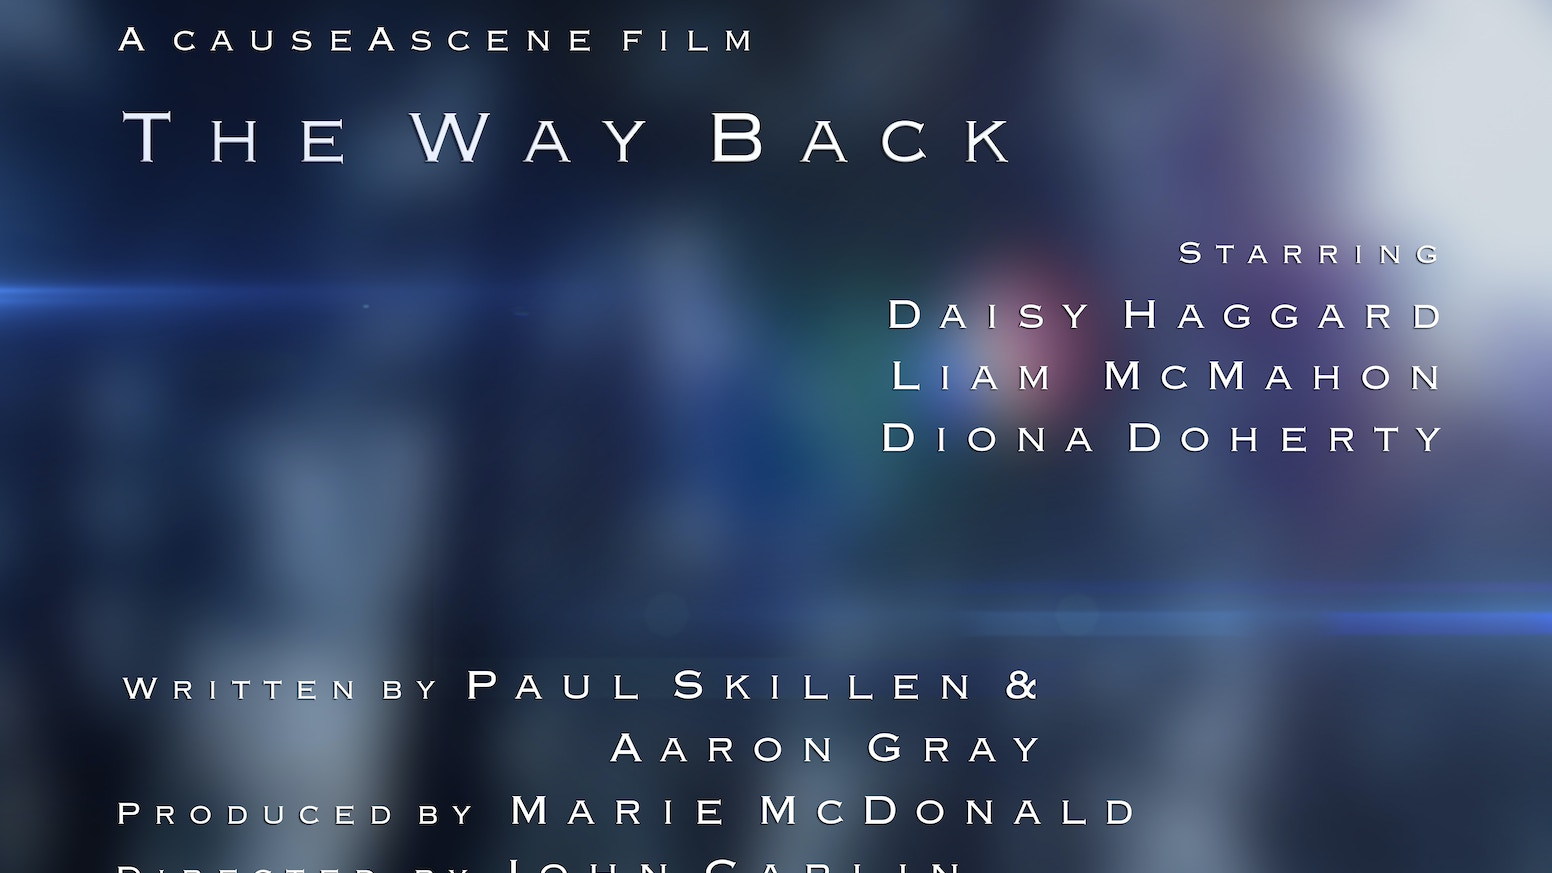 An ambitious high concept, low budget sci-fi short. Time travel, regret and loss in equal parts. Experienced, talented cast and crew.